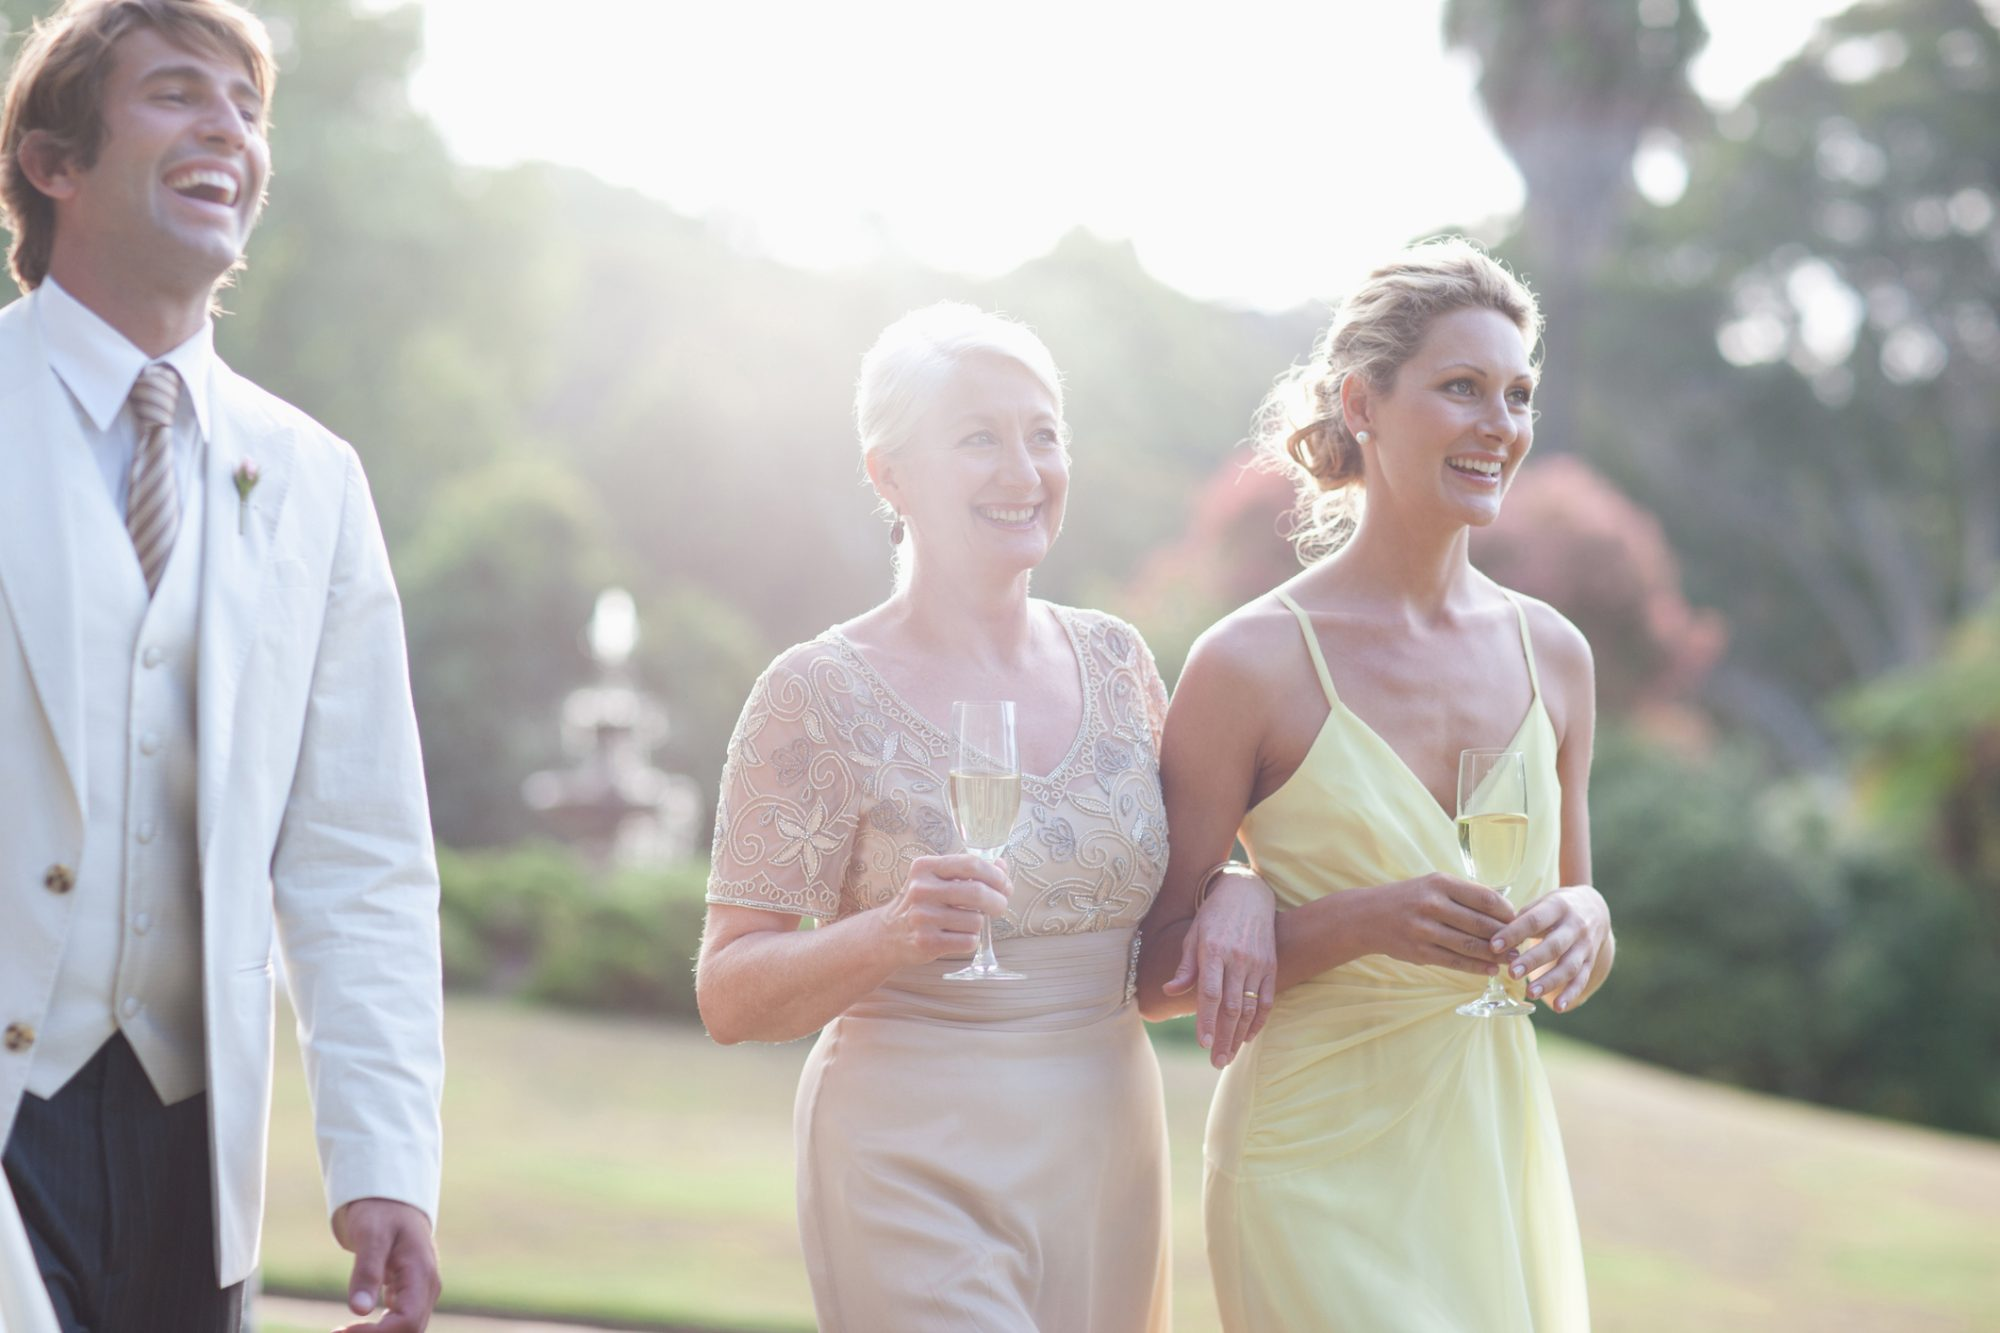 Most Common Wedding Guest Dress Codes